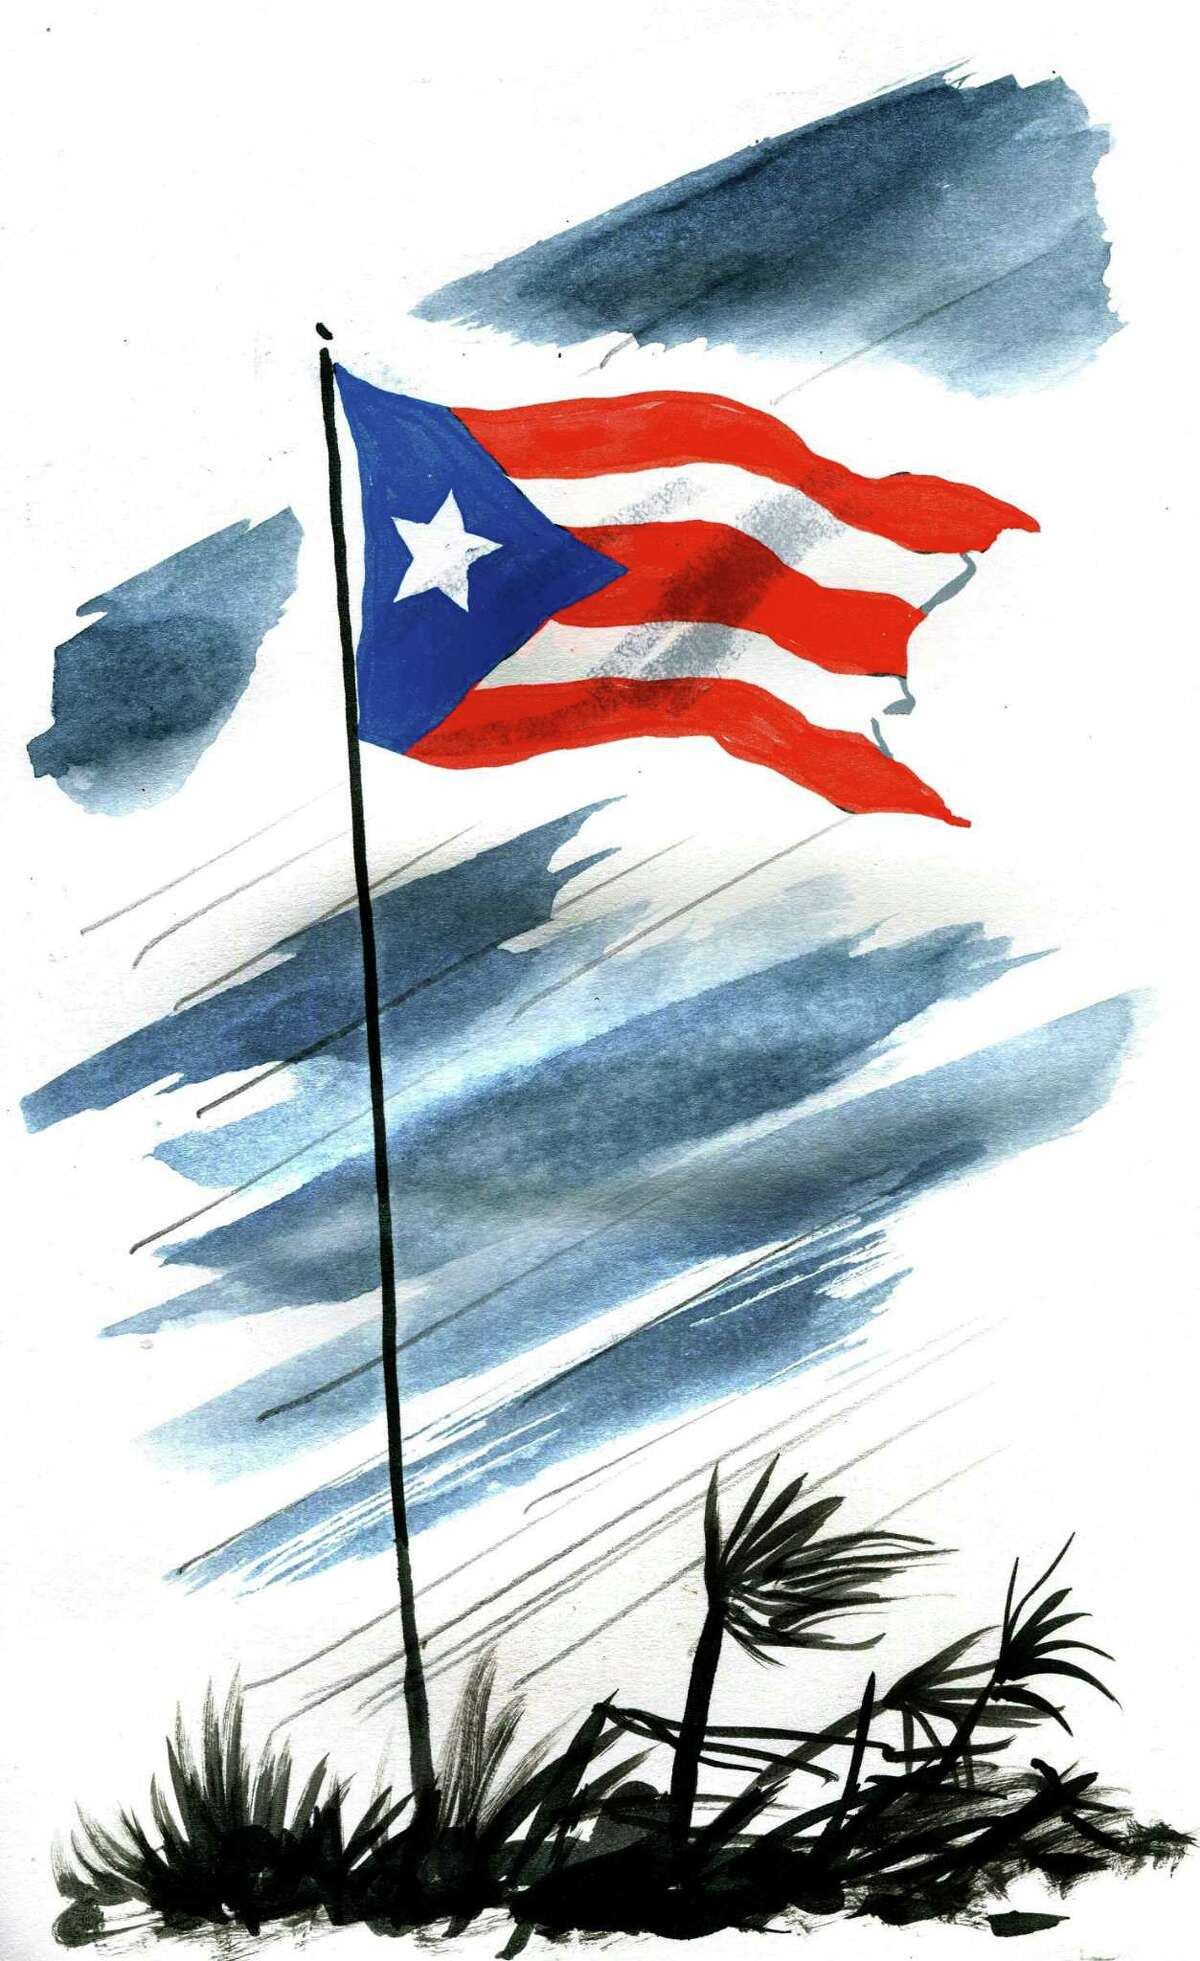 This artwork by Mark Weber refers to Puerto Rico and the aftermath of Hurricane Maria.